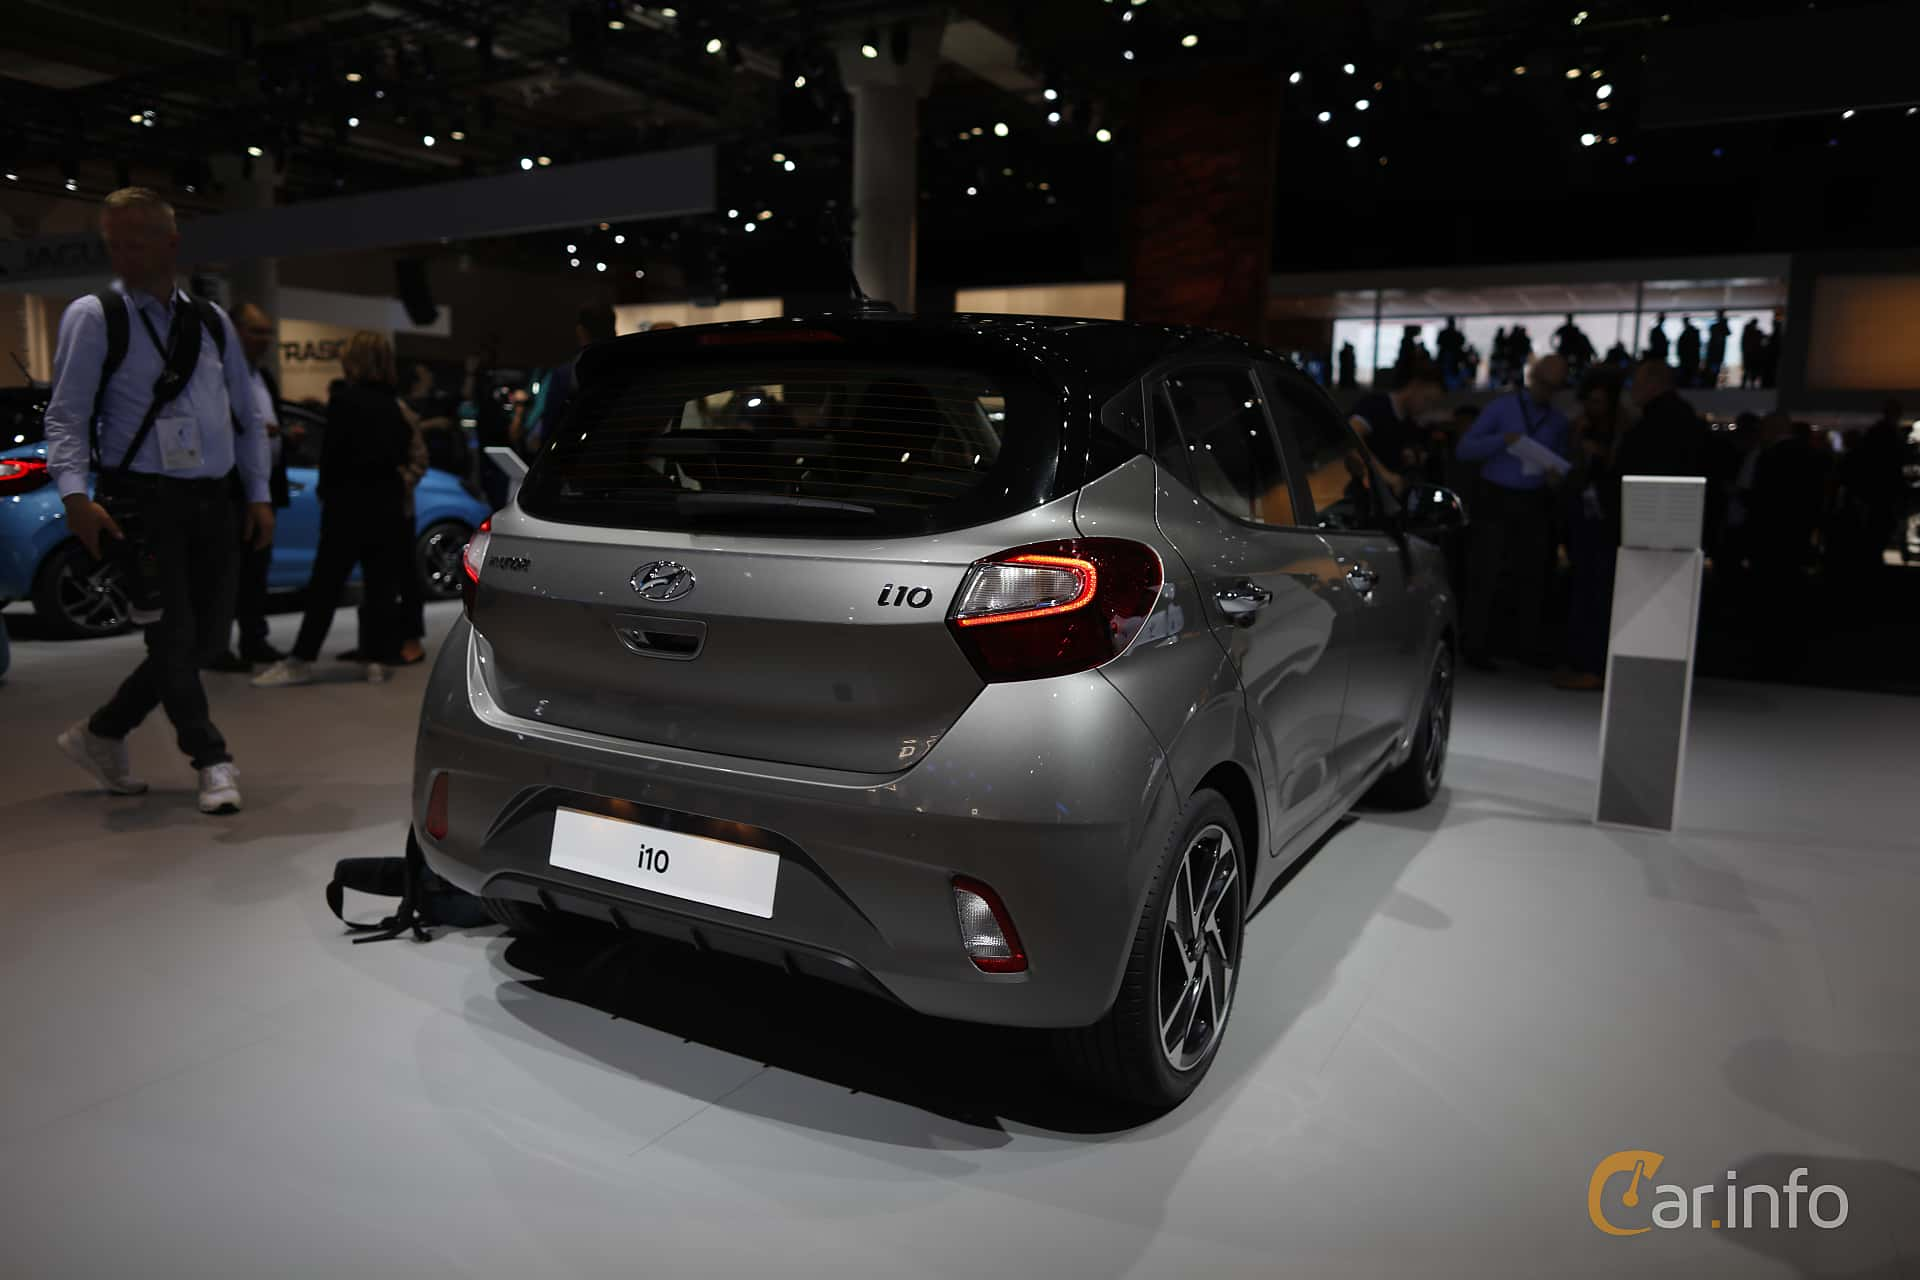 Hyundai i10 1.2 AMT, 84hp, 2020 at IAA 2019